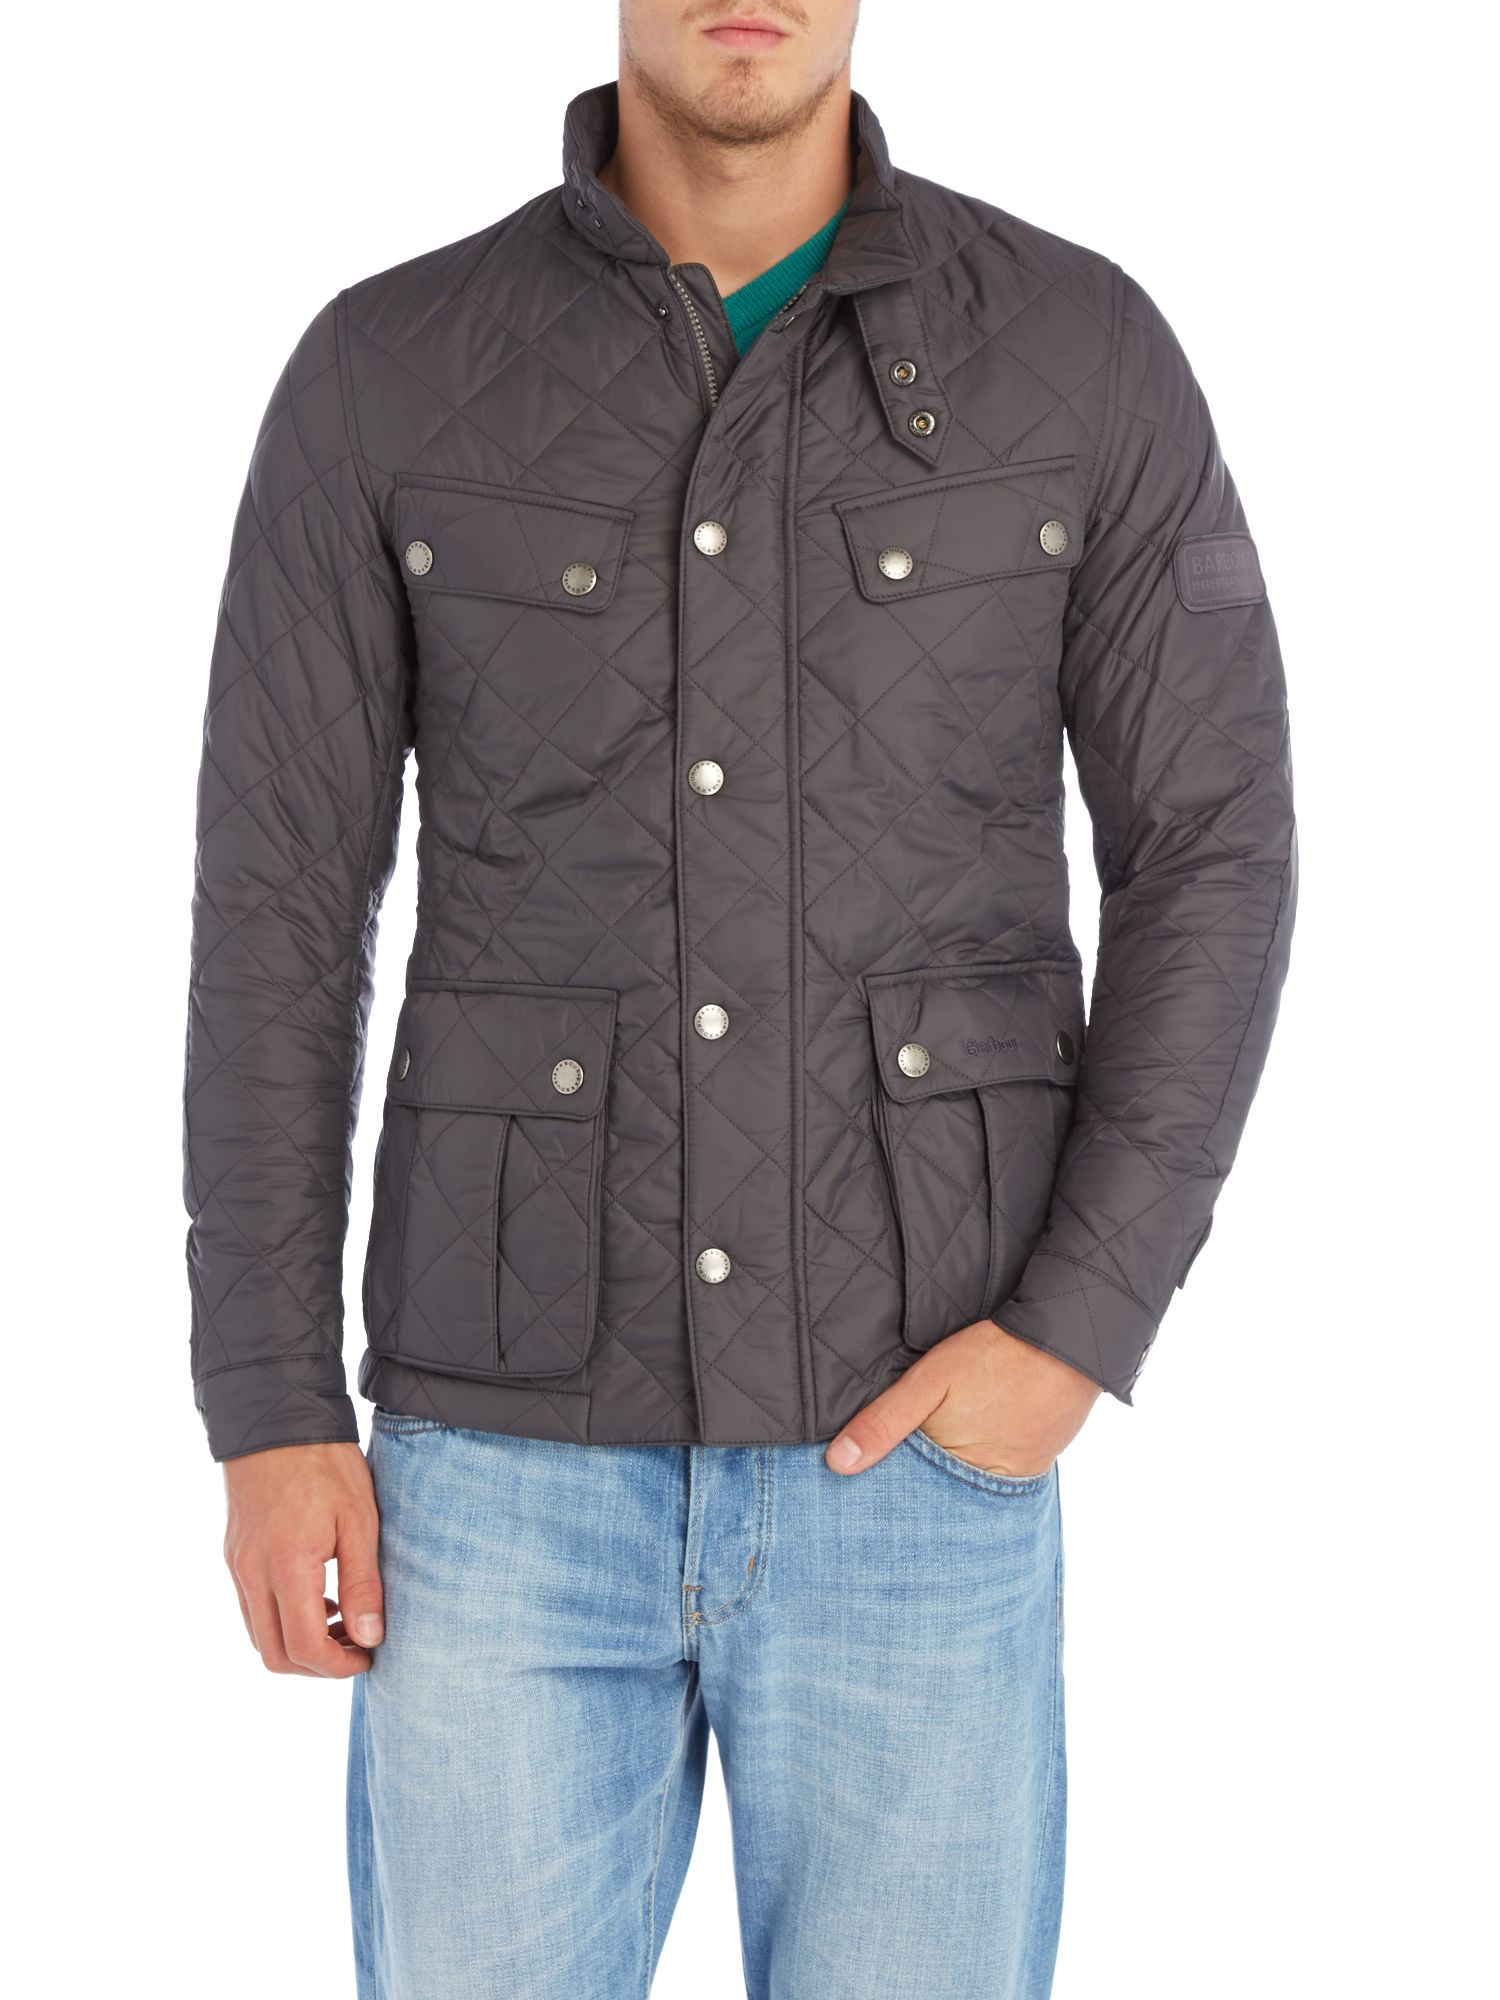 Barbour Ariel Quilted Jacket In Gray For Men Lyst